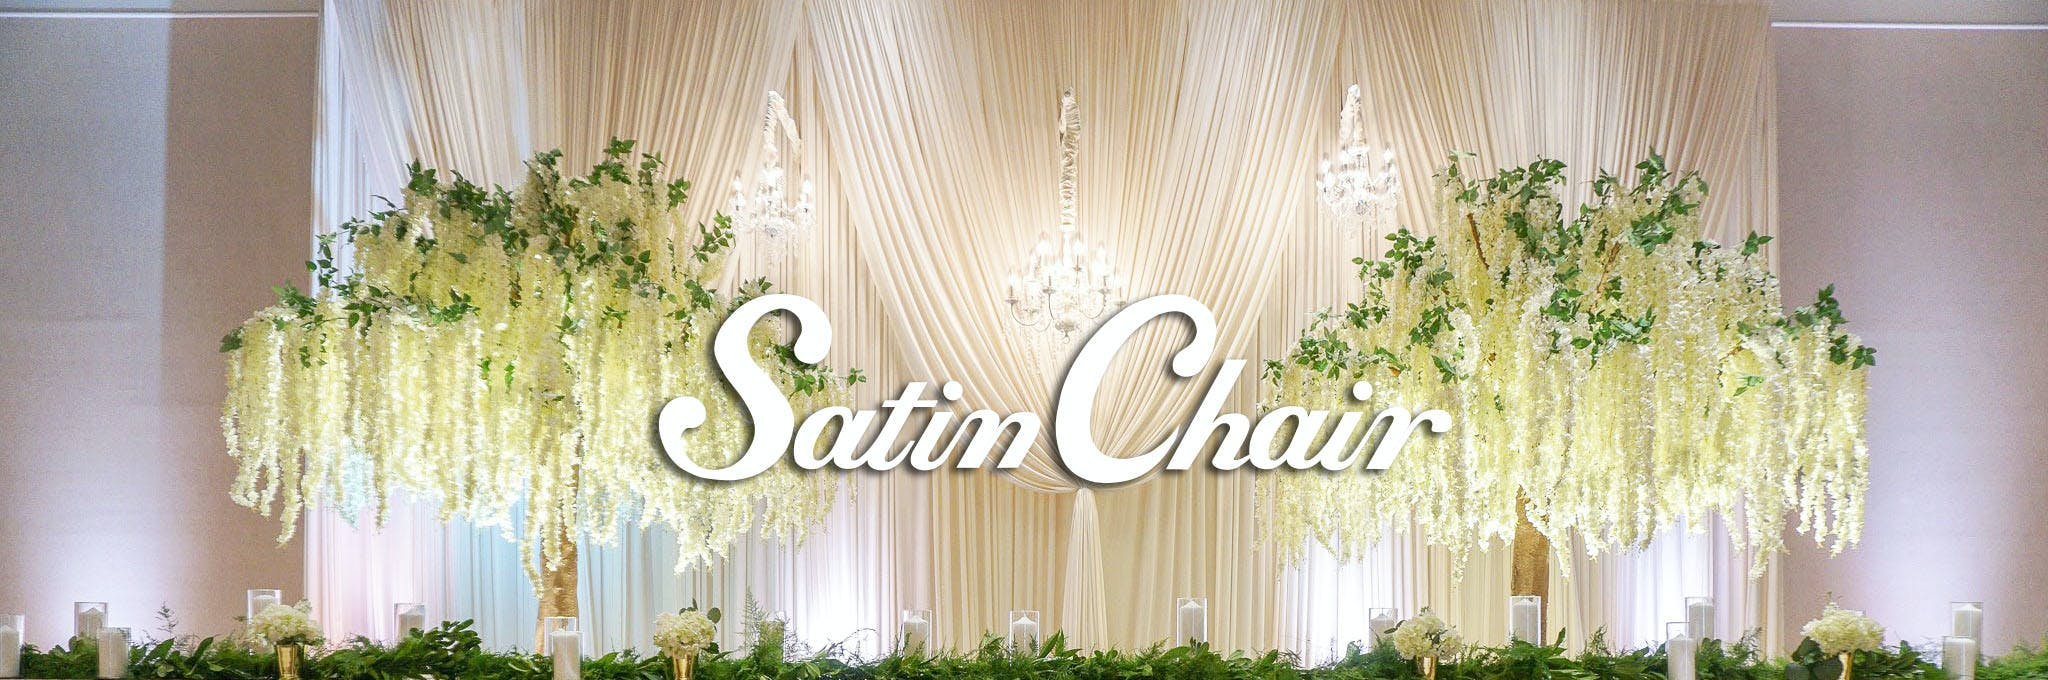 Miraculous Satinchair Com Chicago Wedding Decoration Naperville Gmtry Best Dining Table And Chair Ideas Images Gmtryco